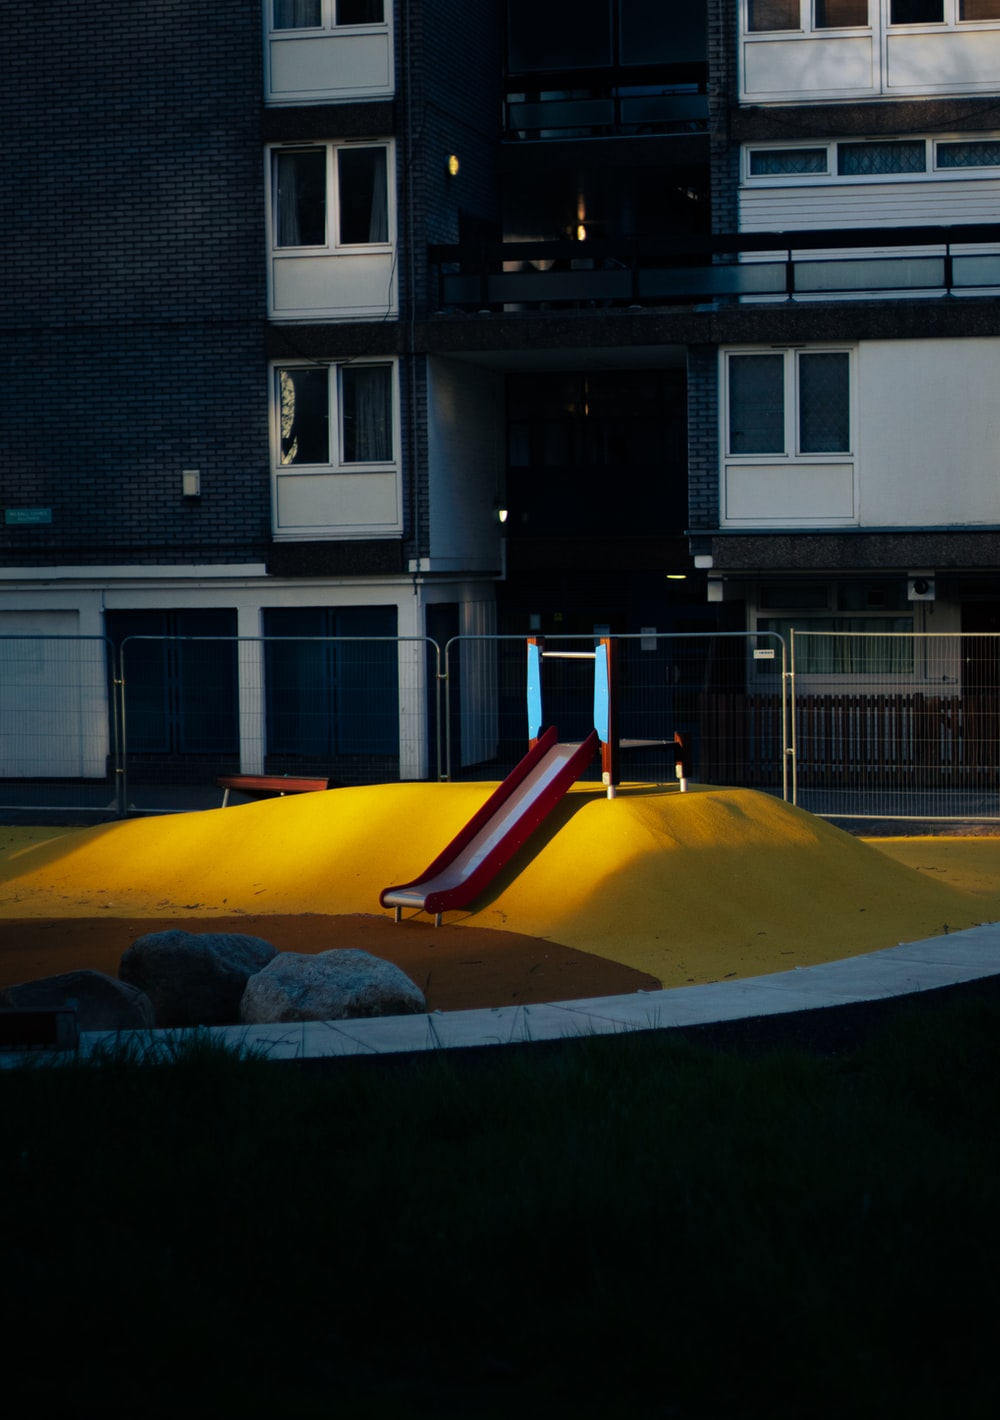 yellow and white inflatable pool